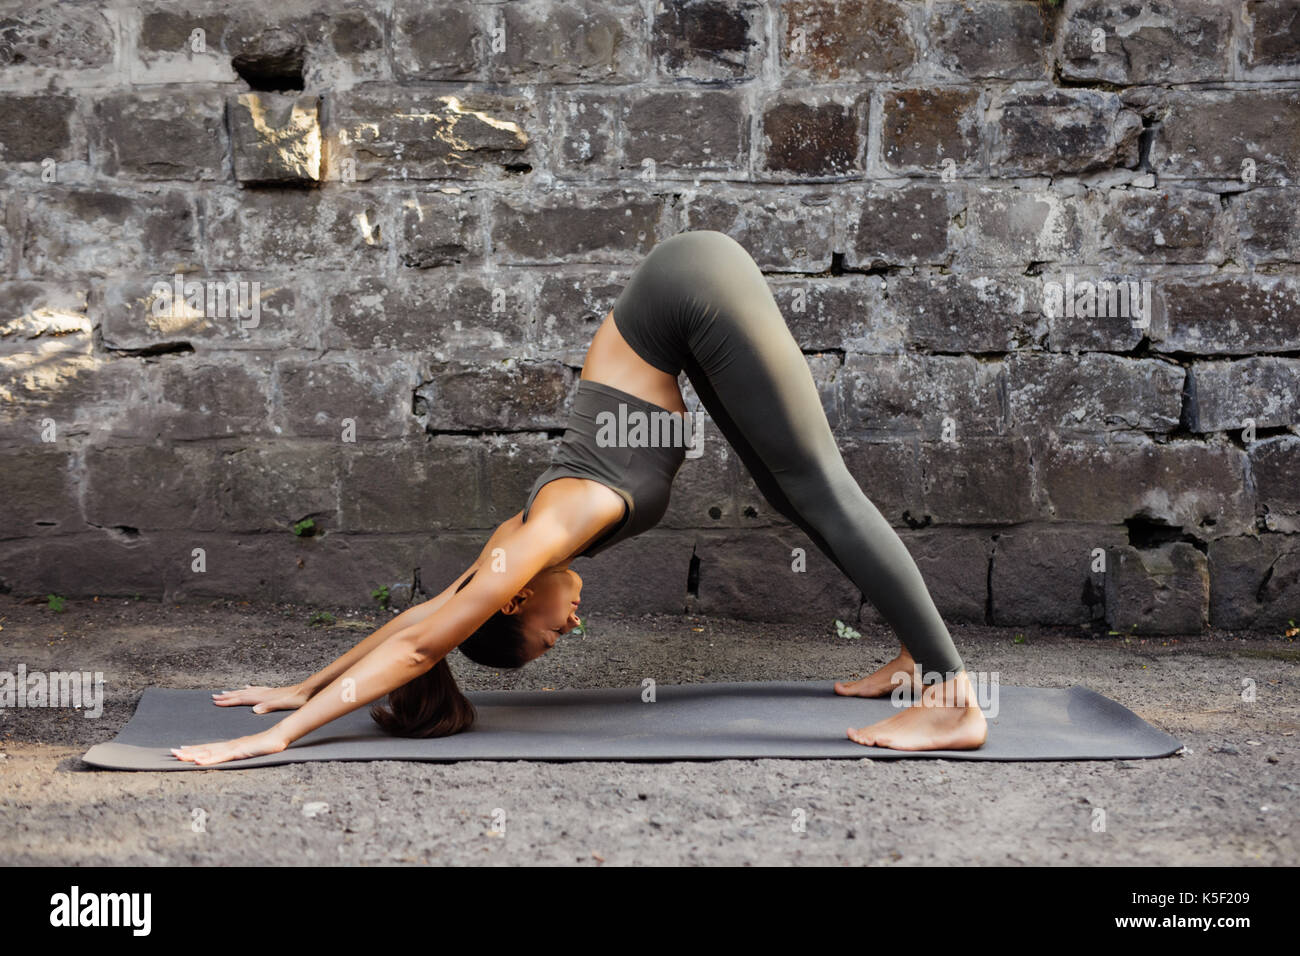 Woman practicing yoga against a brick wall - Stock Image